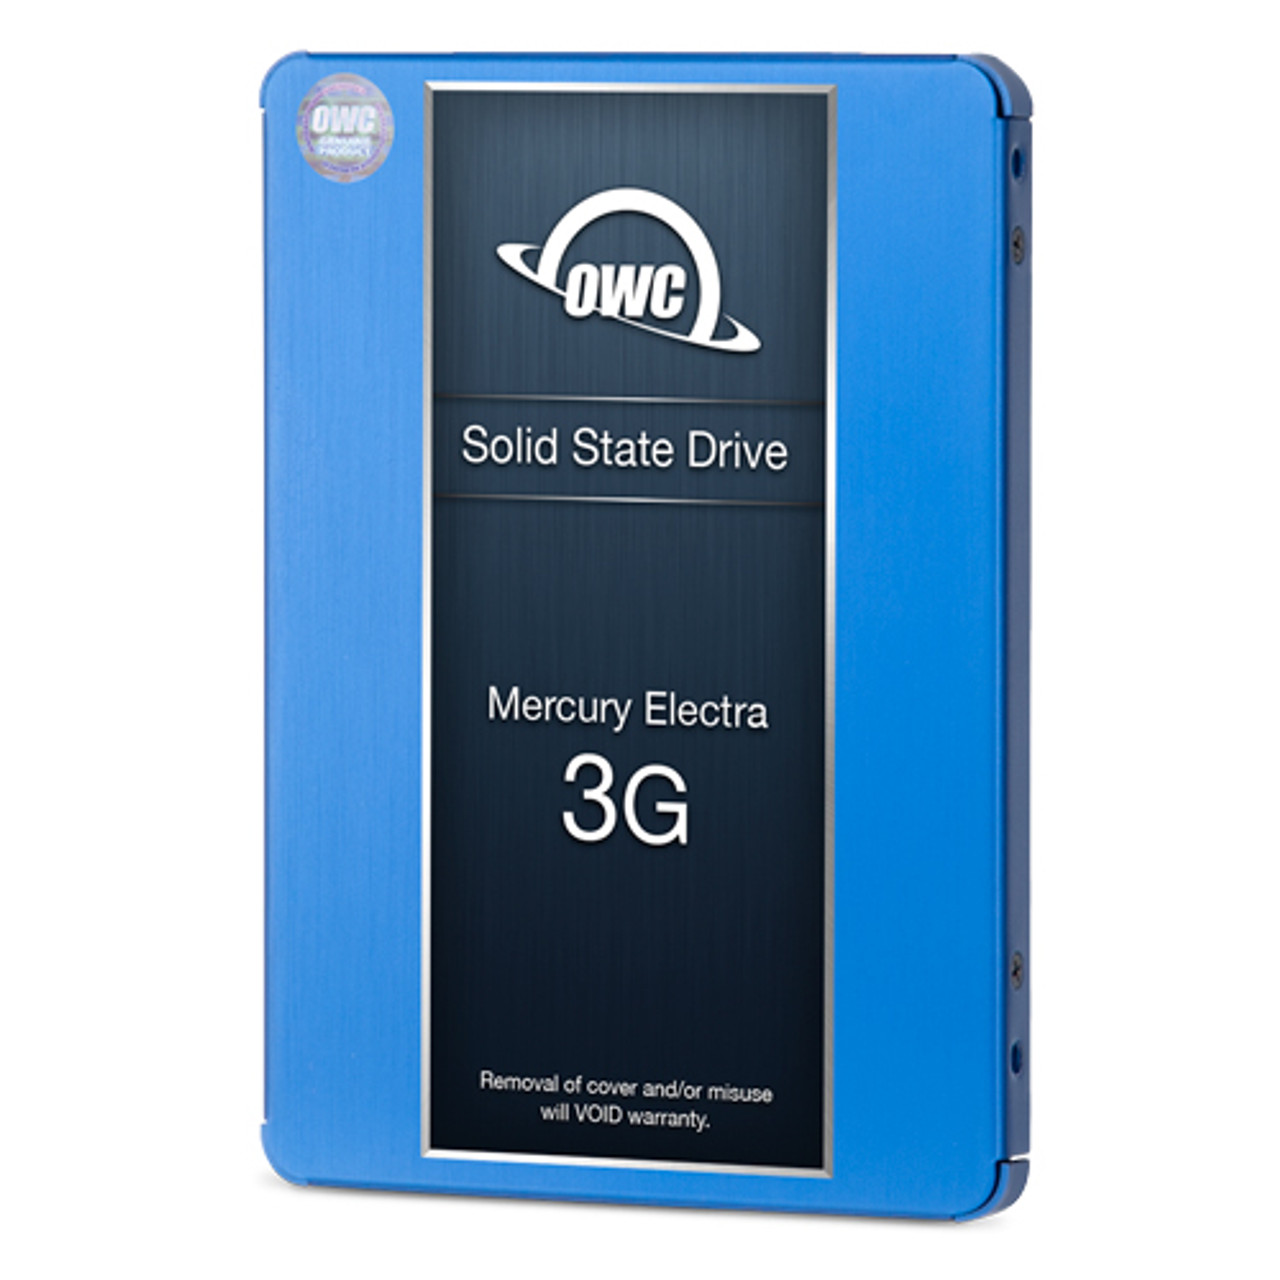 500GB OWC Mercury Electra 3G SSD and HDD DIY Bundle Kit for 2009 - 2010 iMac